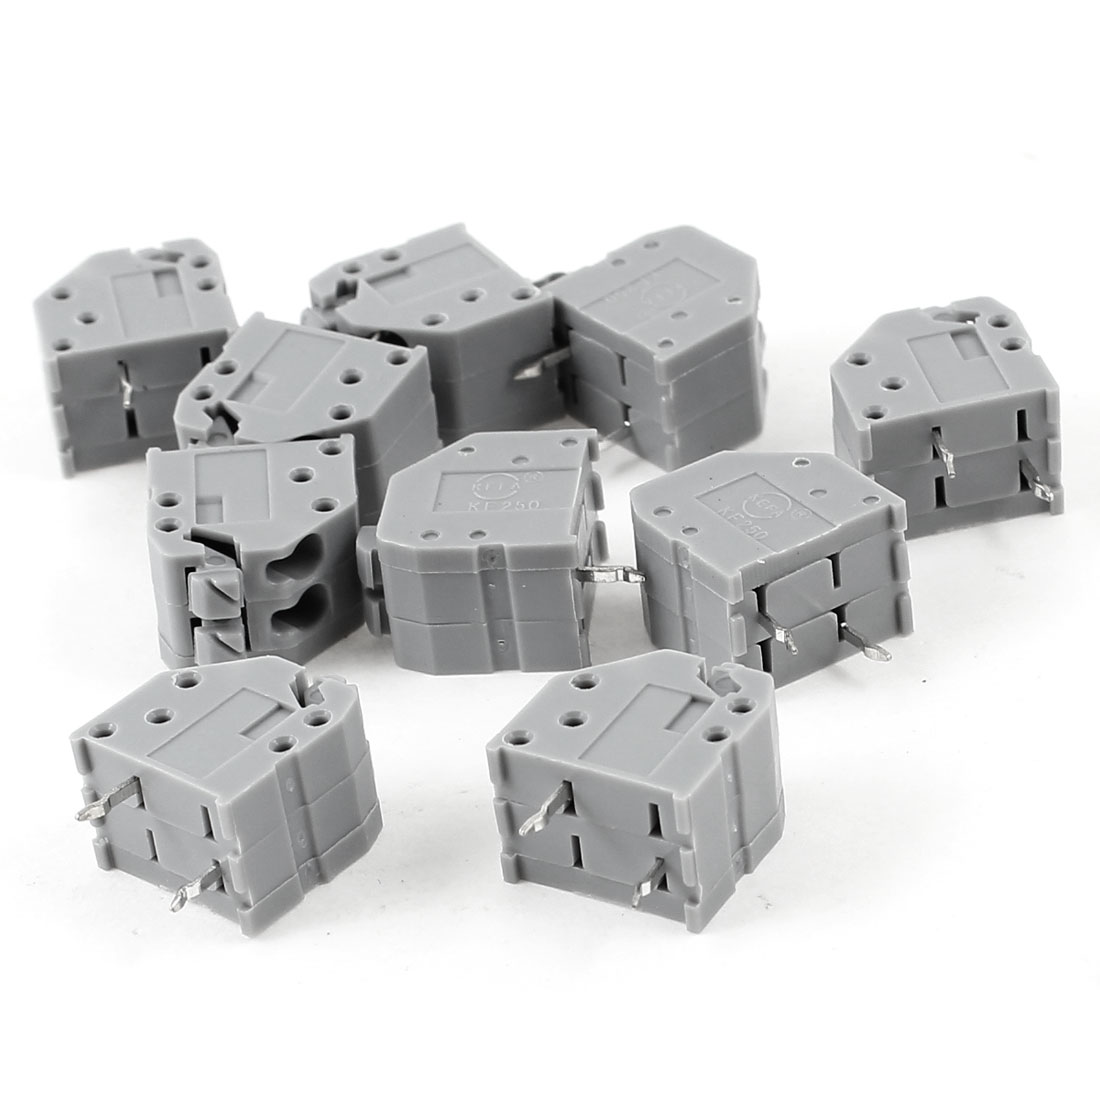 10pcs Straight 3.5mm Pitch Spacing PCB Board Mount Type Screwless Spring Terminal Blocks Connectors Gray AC 400V 2A